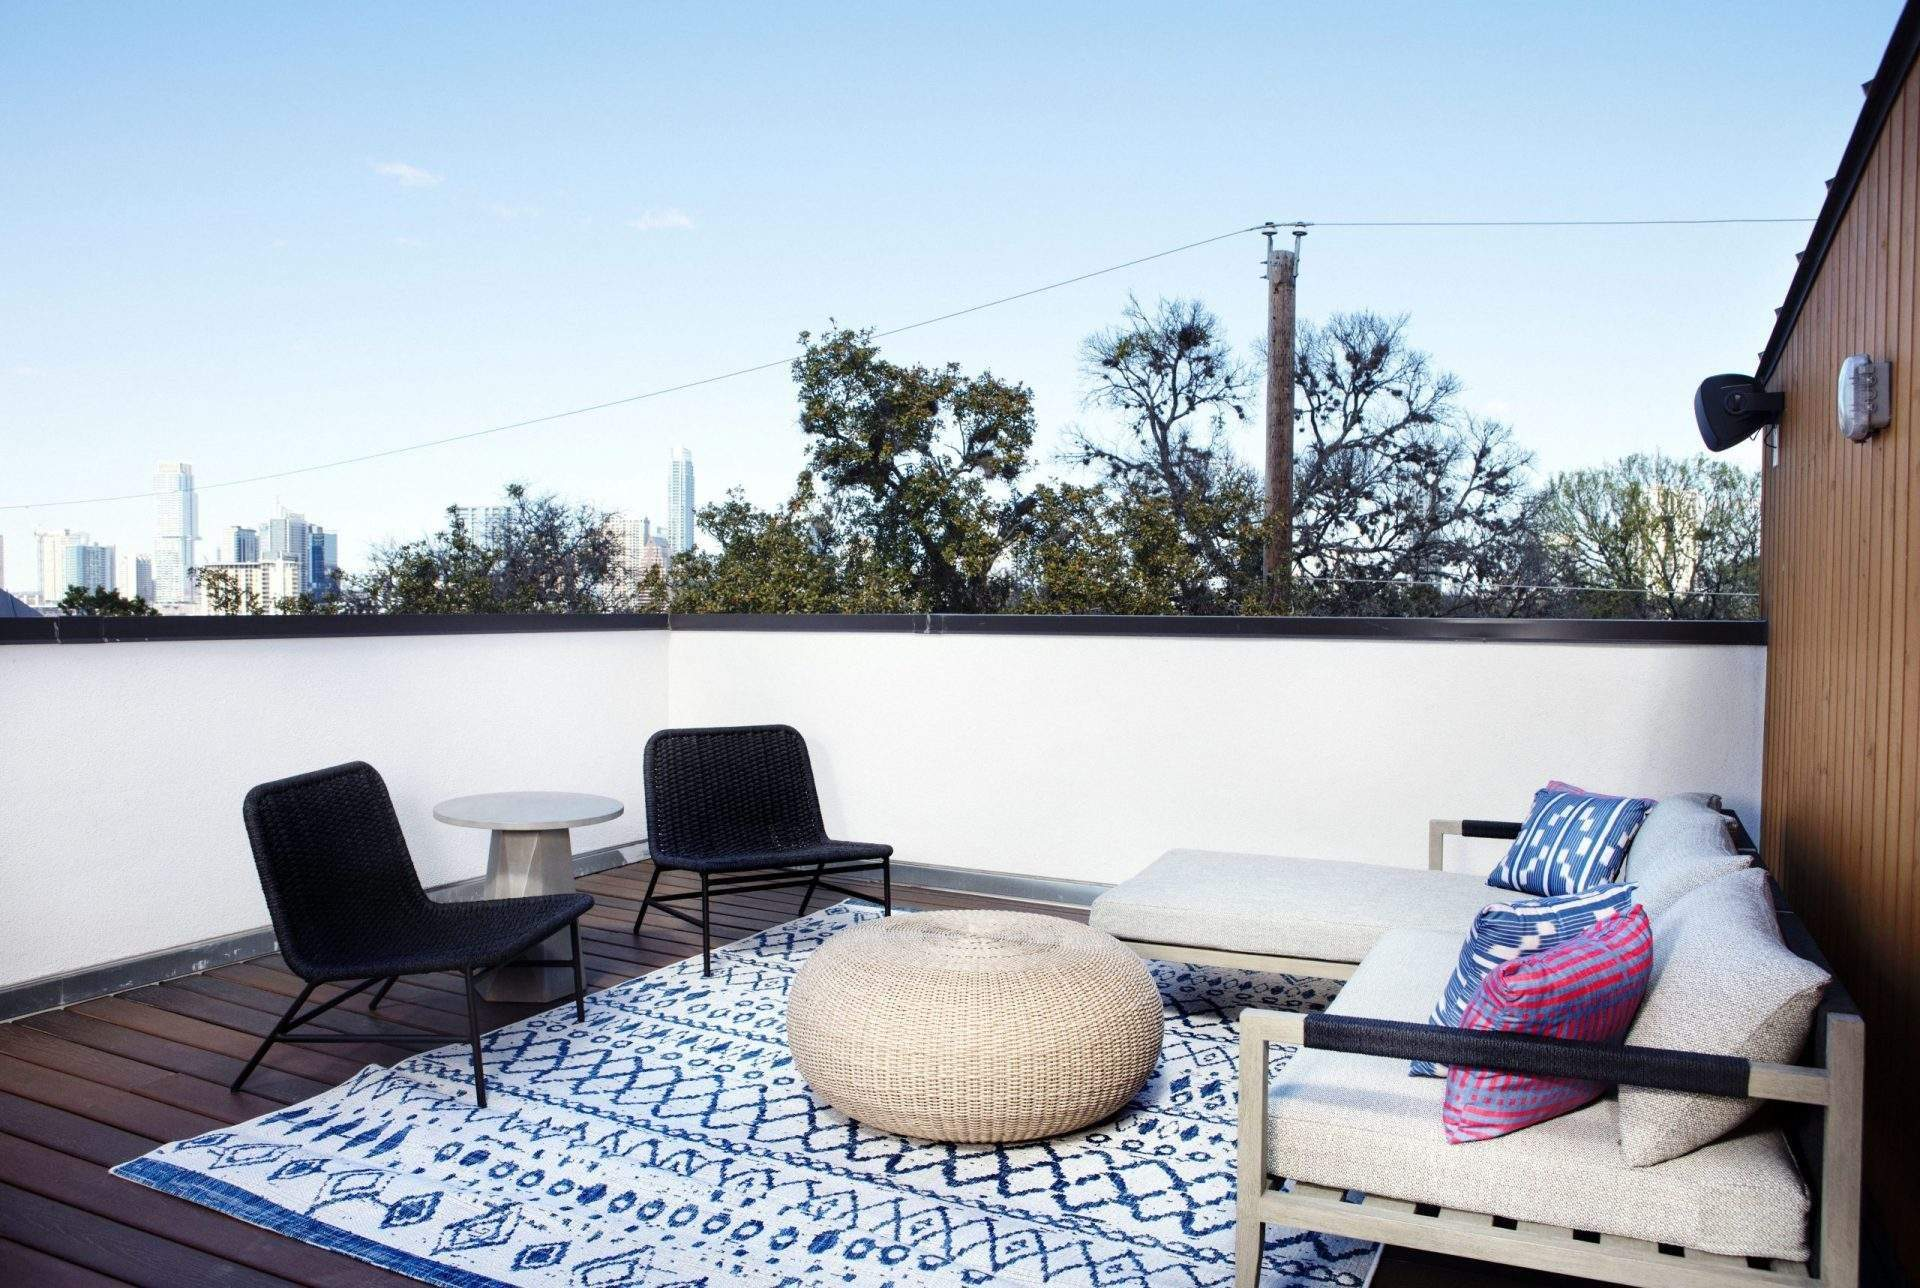 travis heights | deck with sofa and 2 chairs | austin, texas